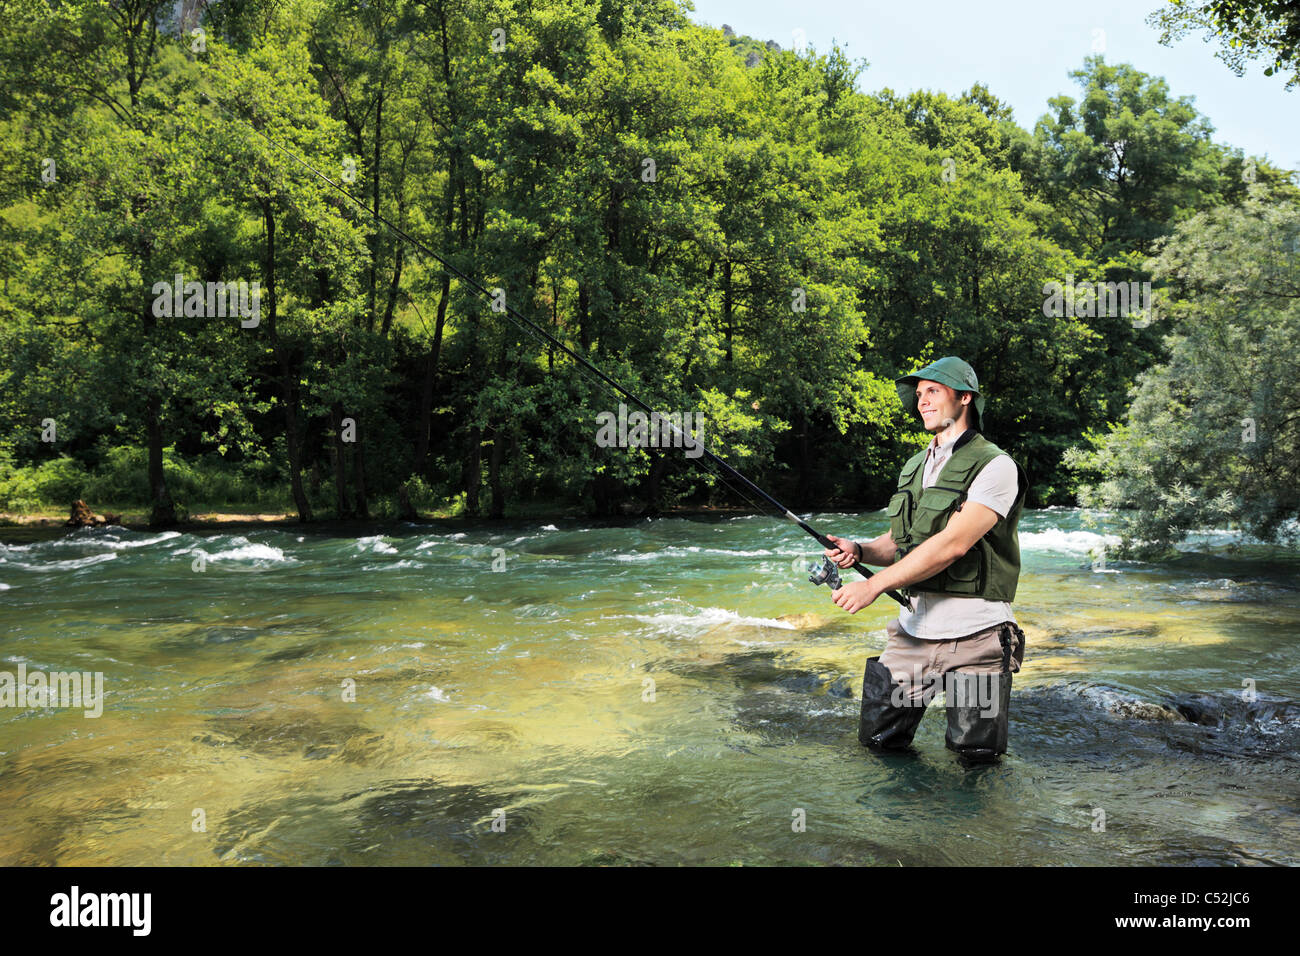 A fisherman fishing on a river Stock Photo